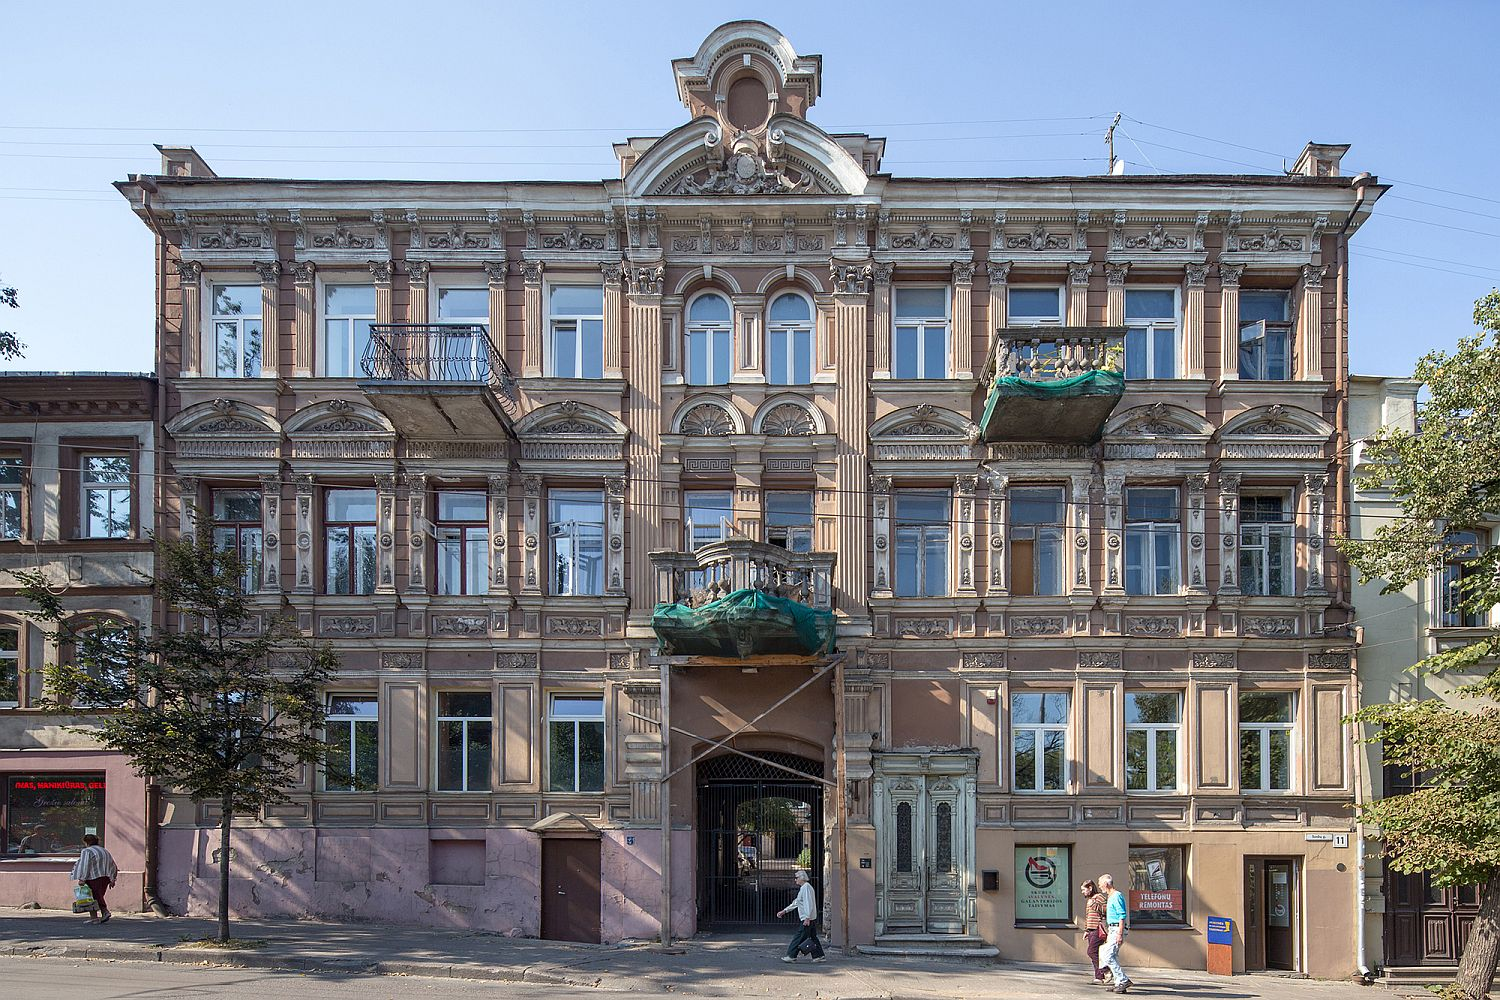 156 year old building in Lithuania with remodeled Young Family Apartment